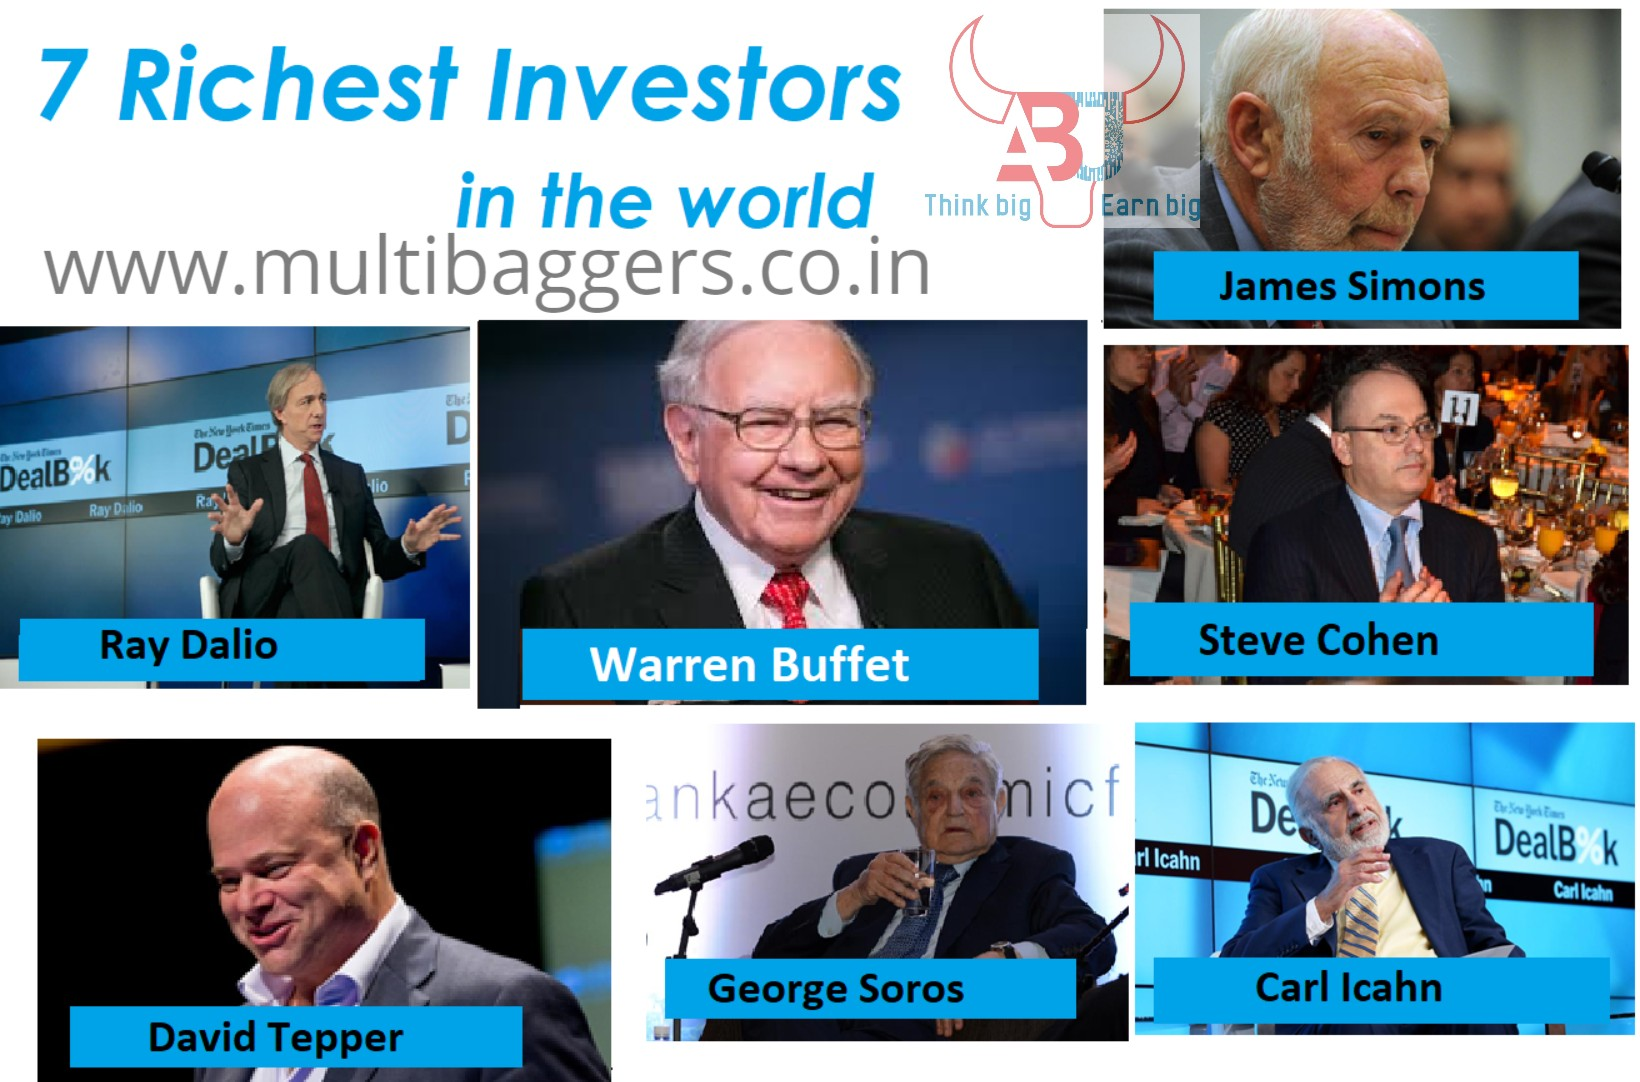 7 Richest Investors in the world and things to learn from them